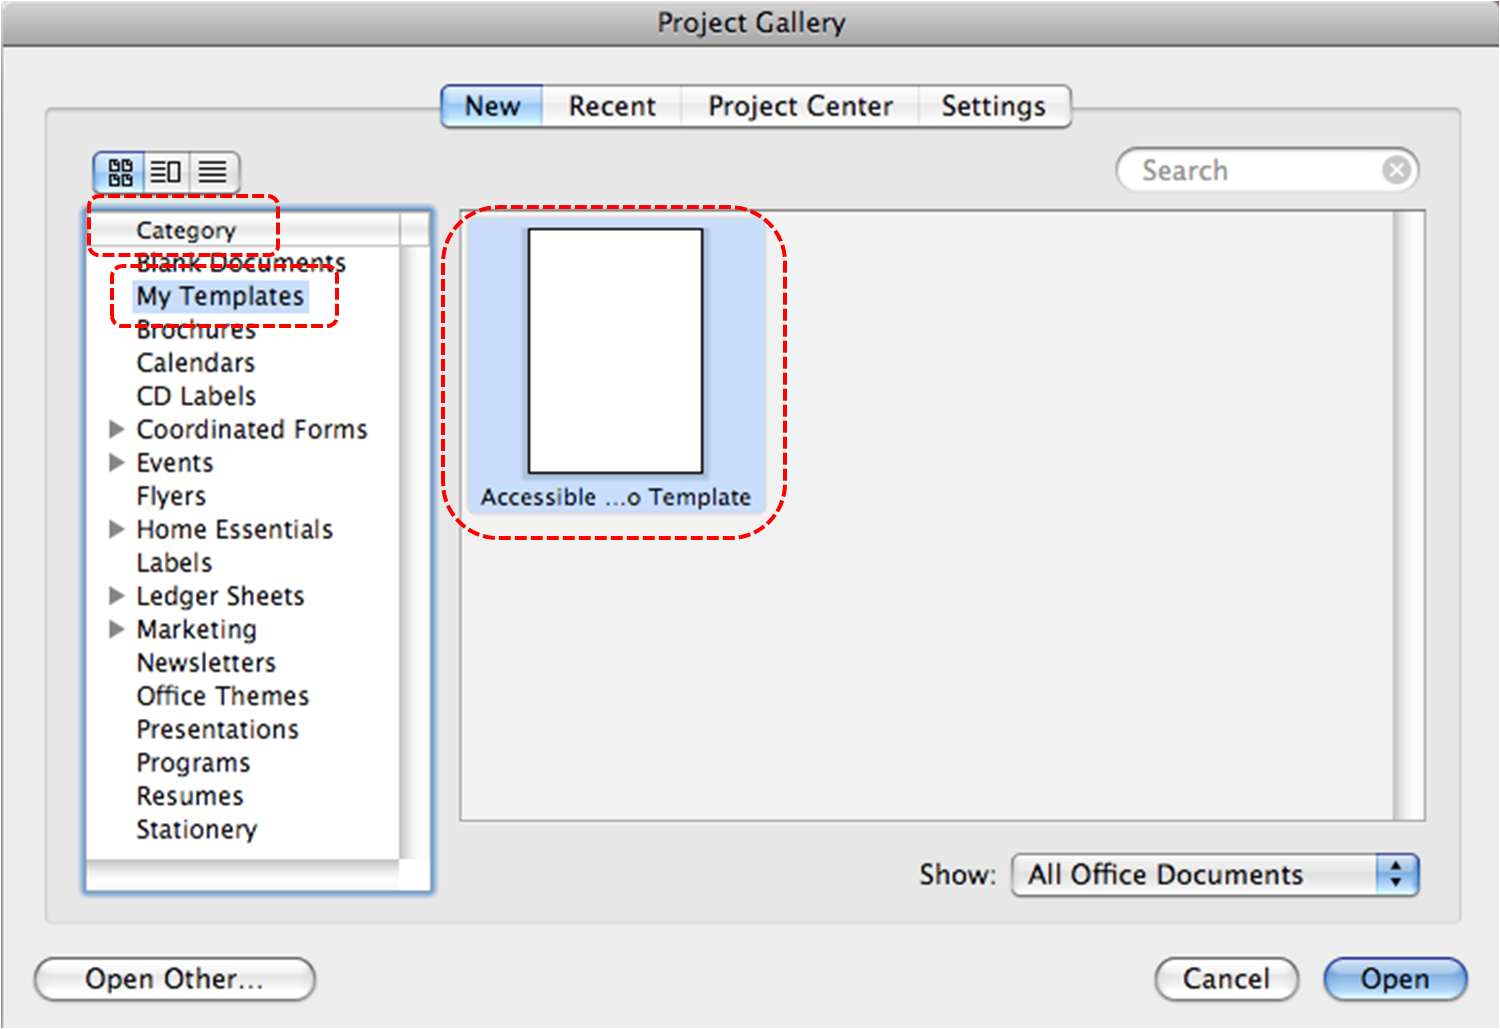 Image Demonstrates Location Of My Templates In Category Section And An  Accessible Template In The Scrolling